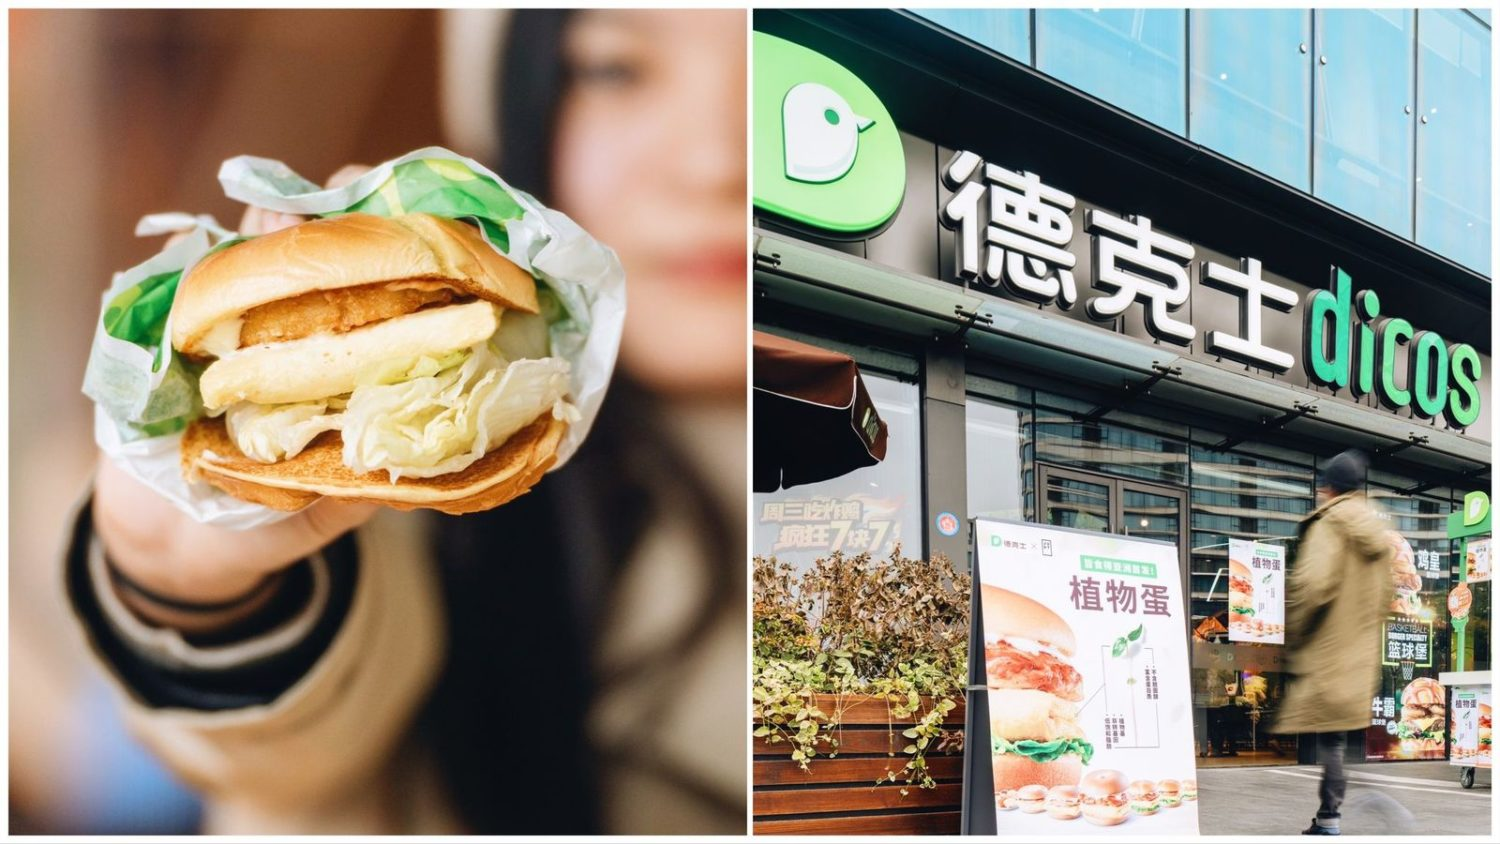 Vegan Egg Is Having a Major Moment in China